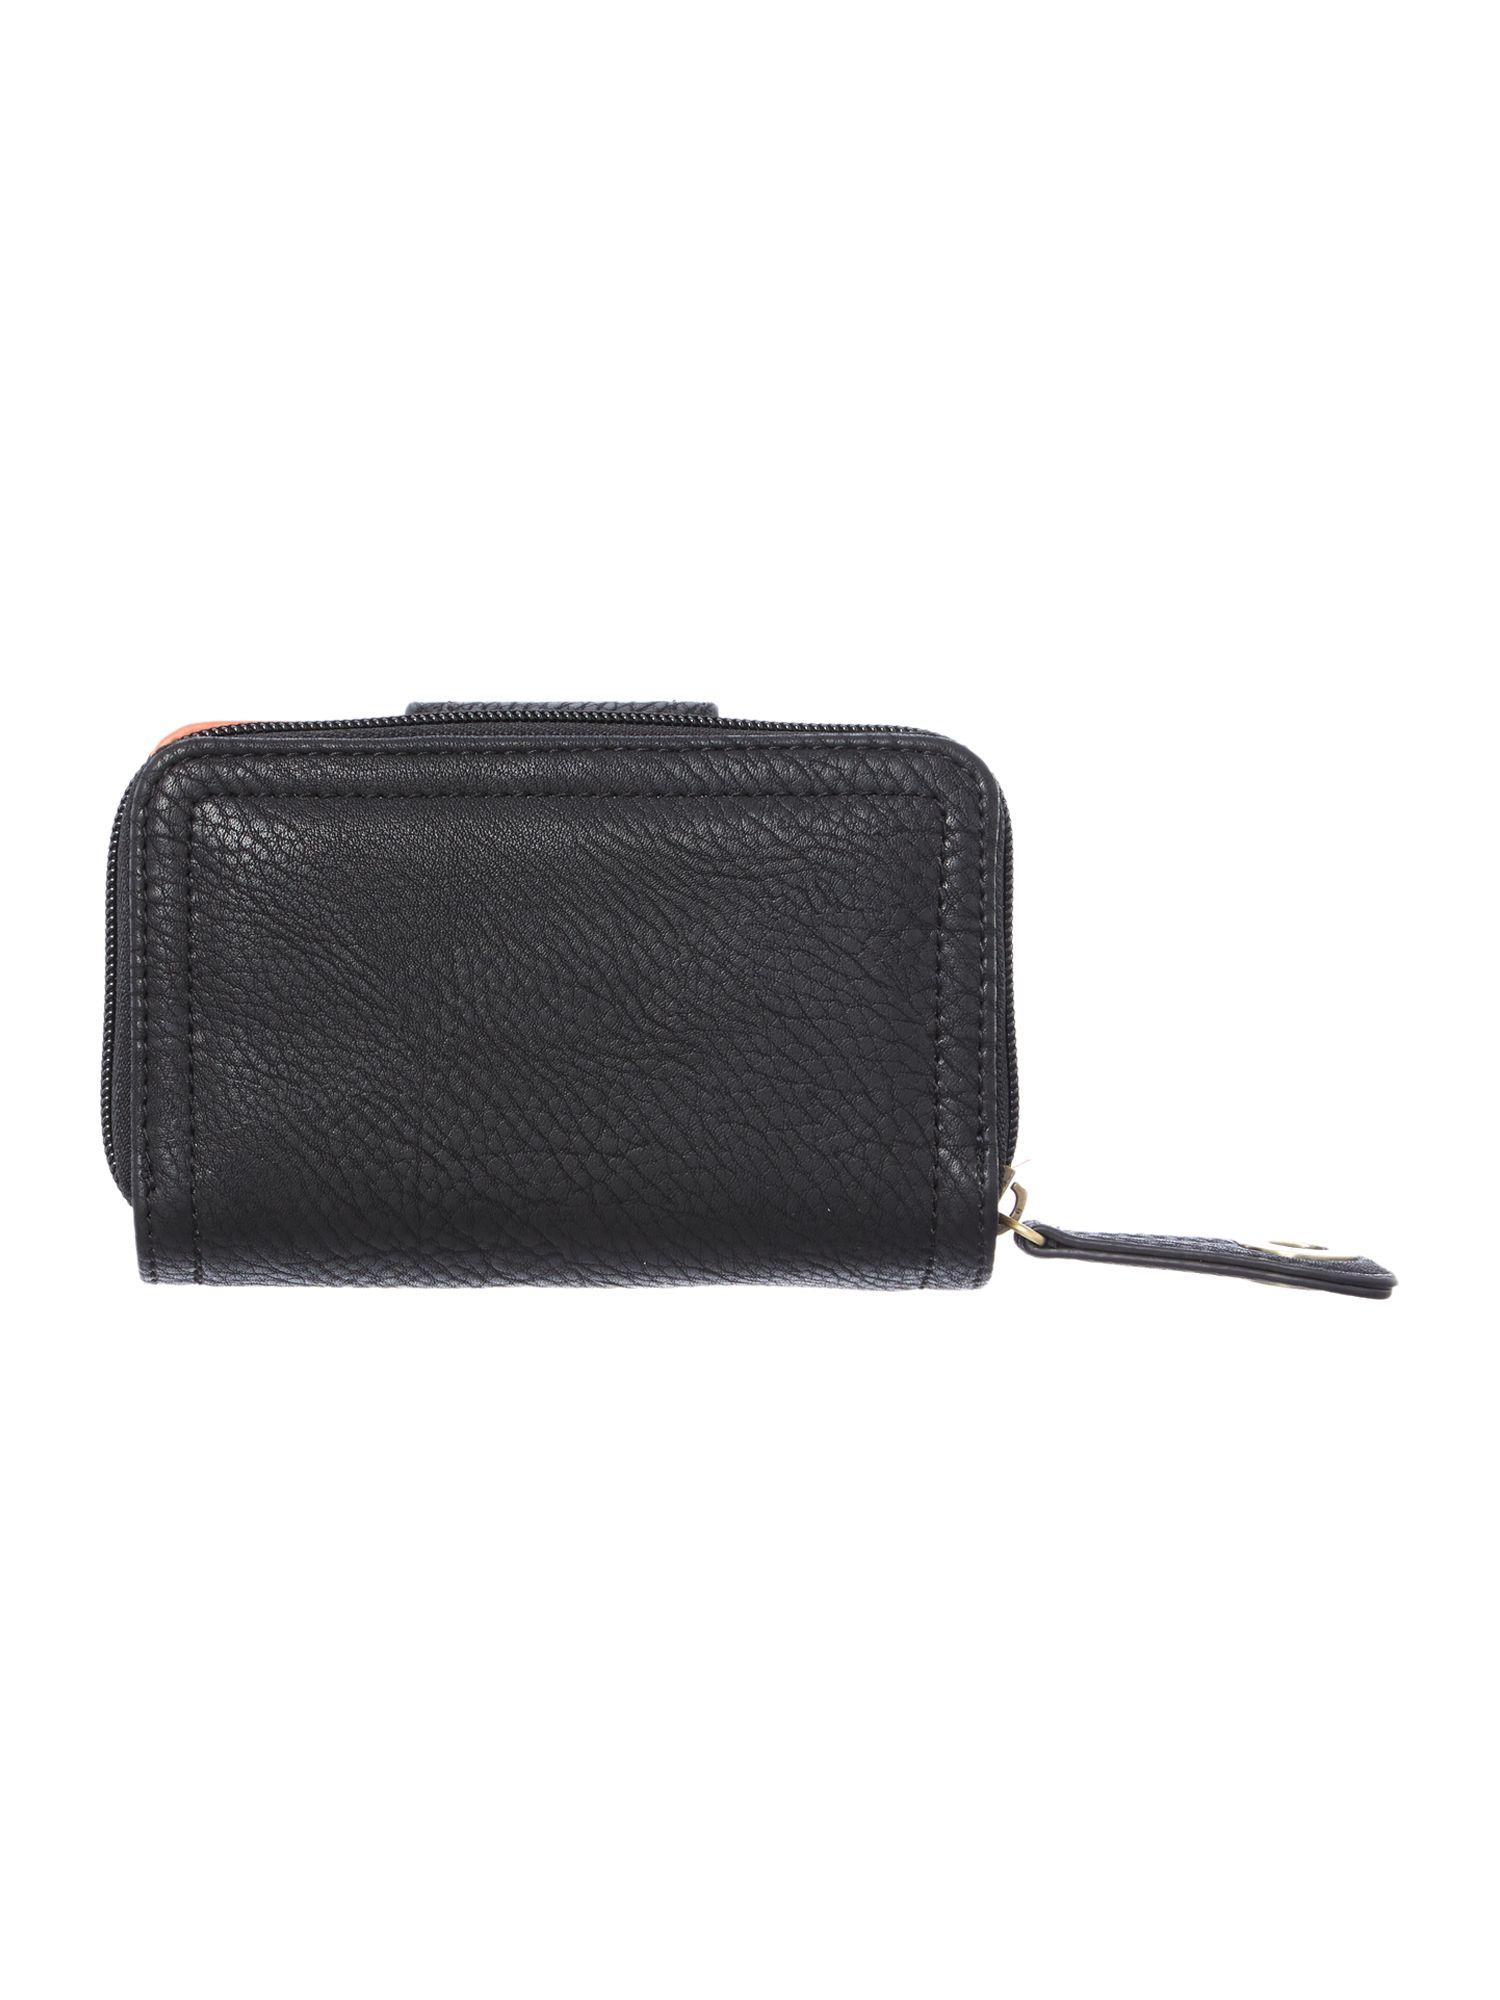 Takara small black zip around purse